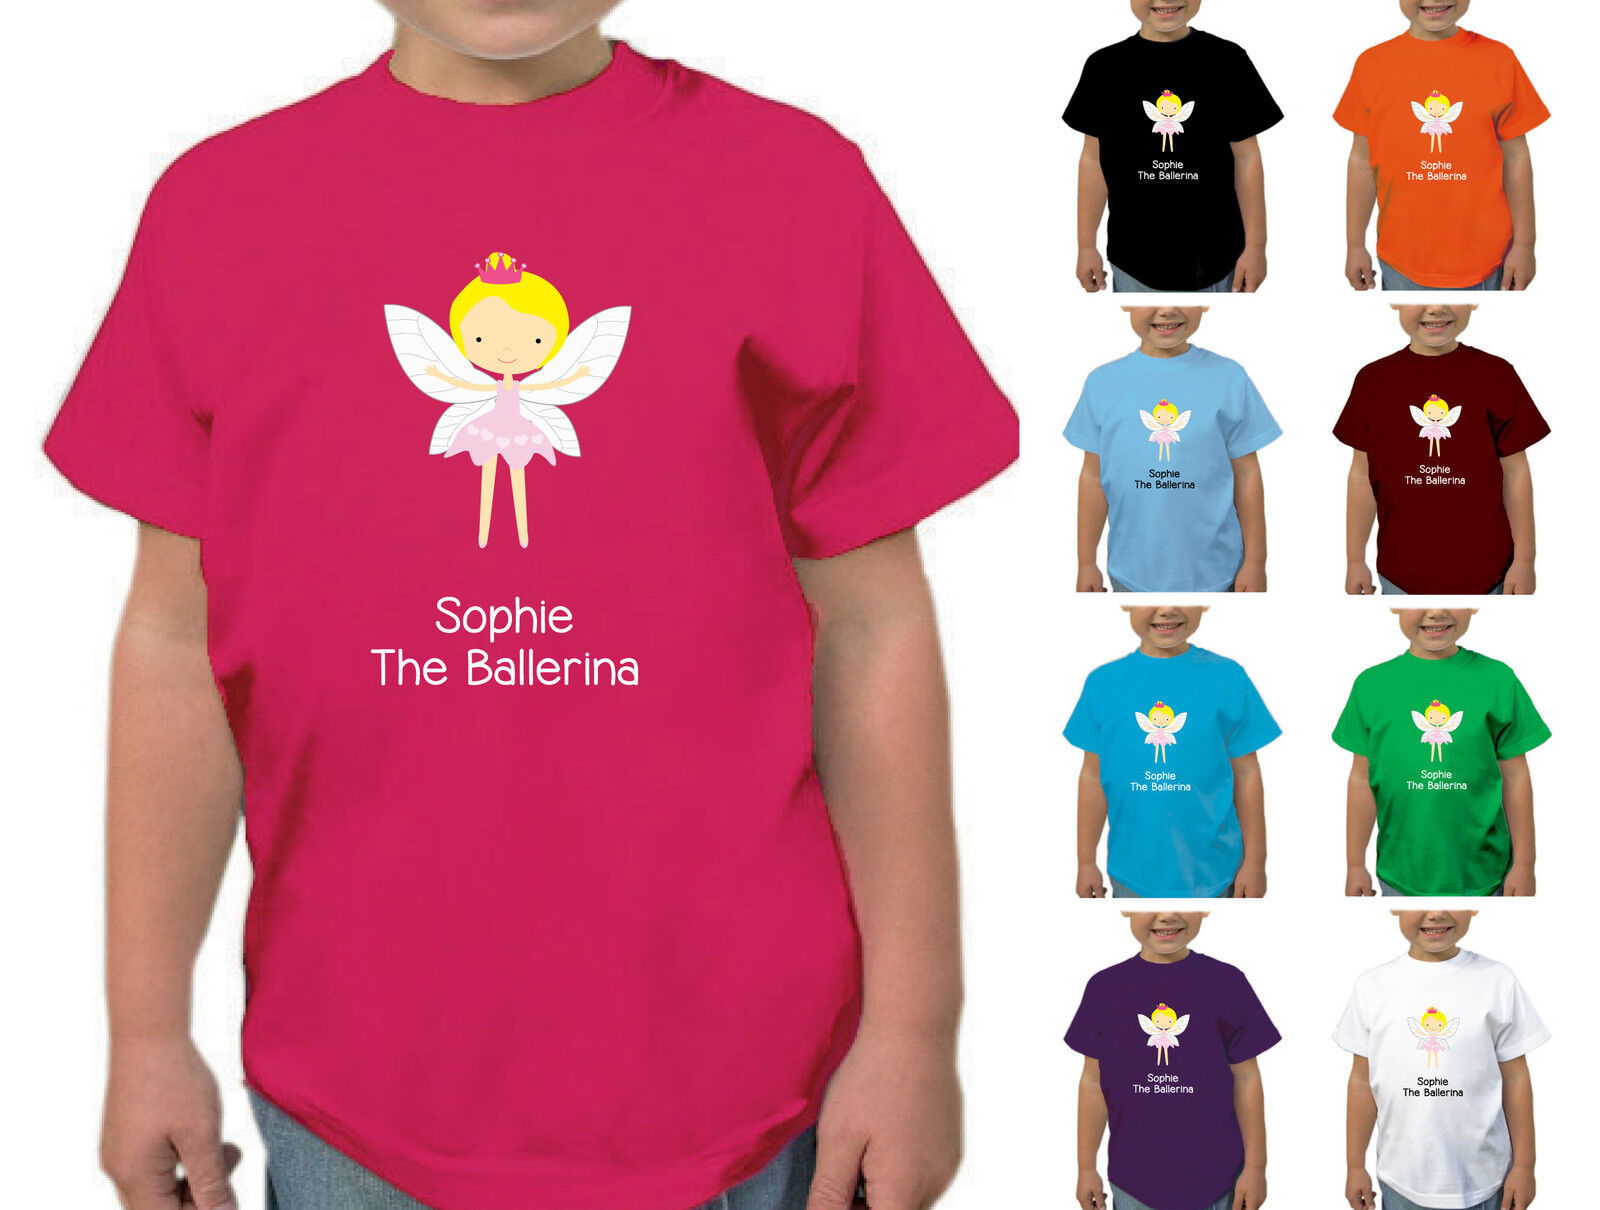 GIRLS PERSONALISED FLORAL DESIGN T-SHIRT CHILDRENS KIDS T SHIRT AGES 1-12 YRS